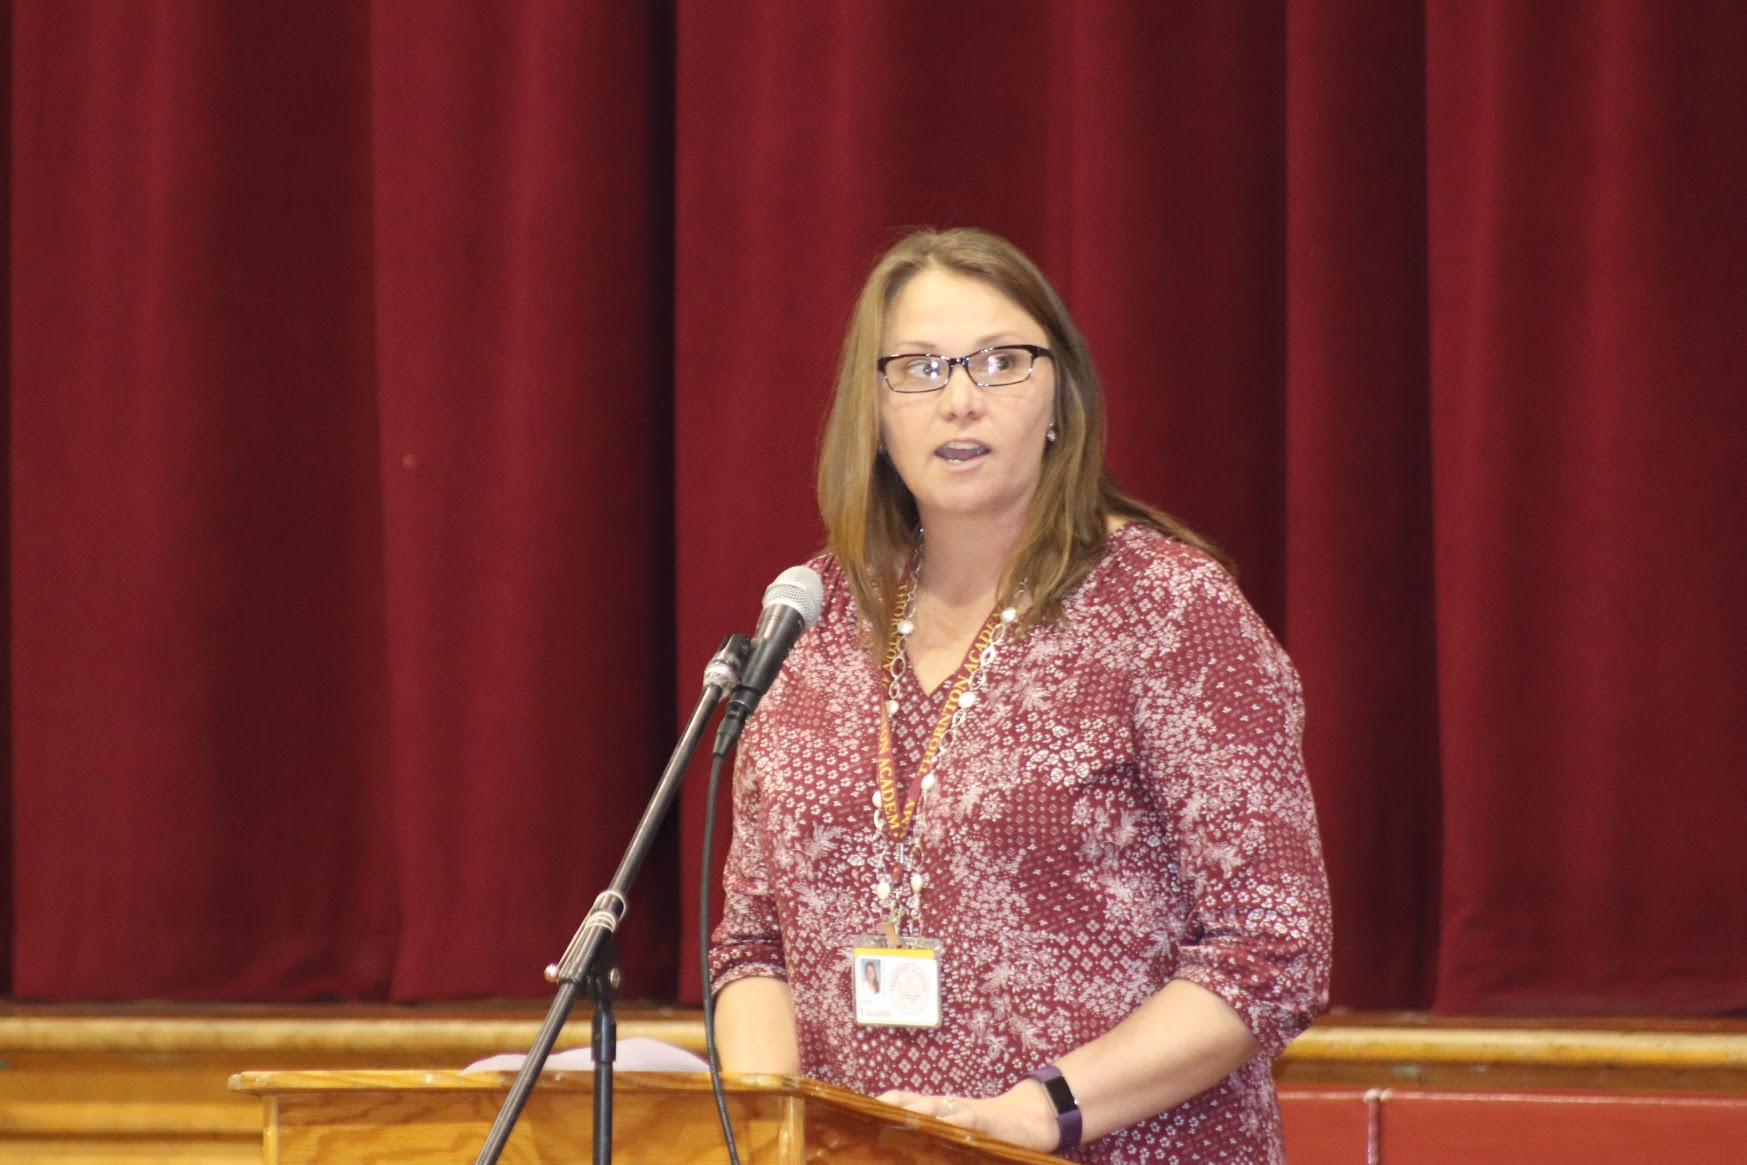 Mrs. Lasante-Ford speaks about responsibility